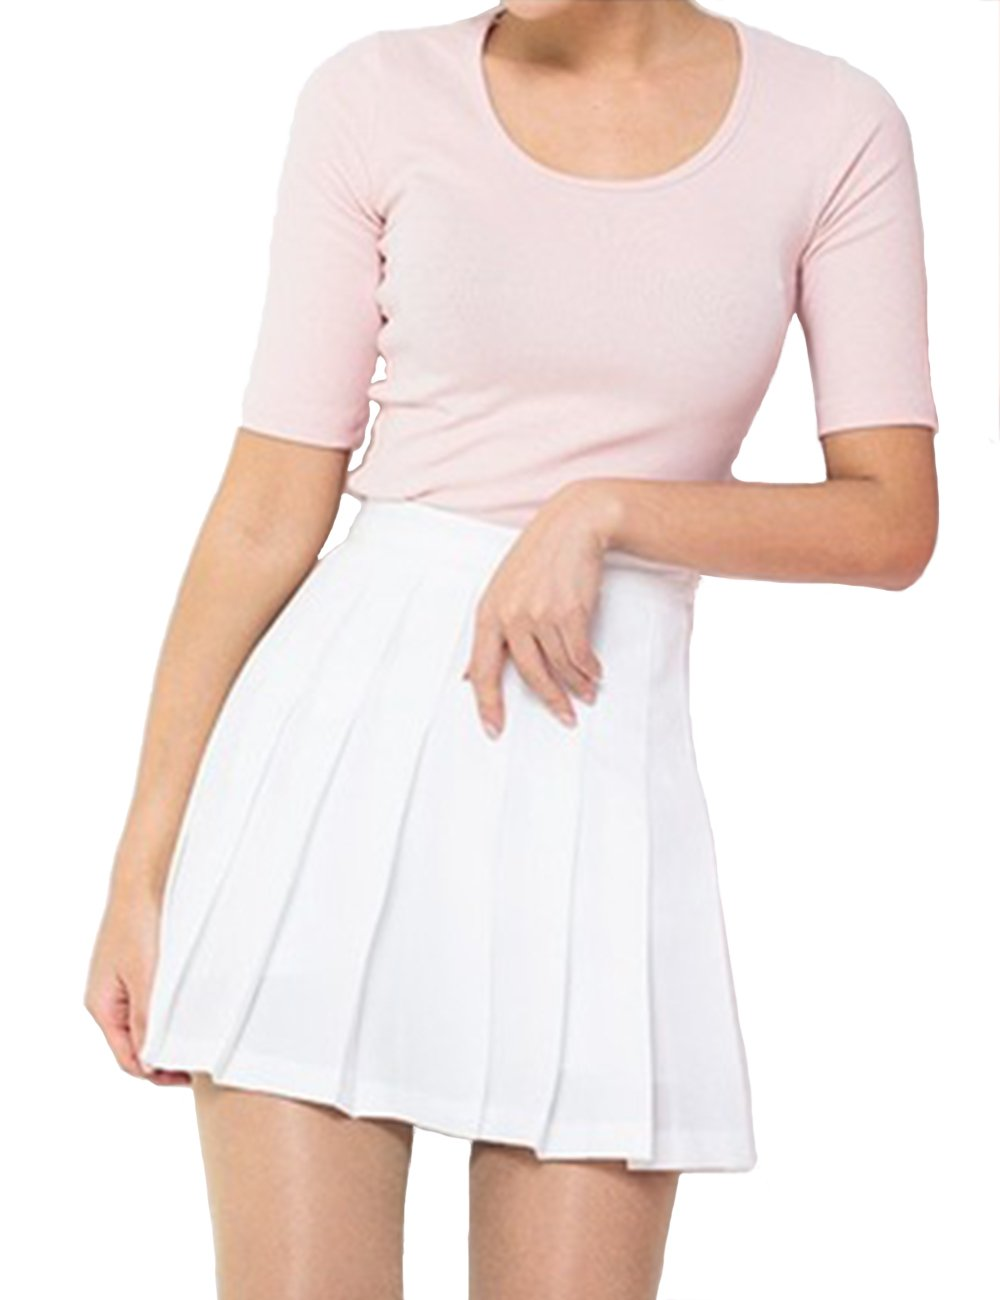 Imagine Girl's Short Pleated School Dresses for Teen Girls Tennis Scooters Skirts Skate Skirts WH-L